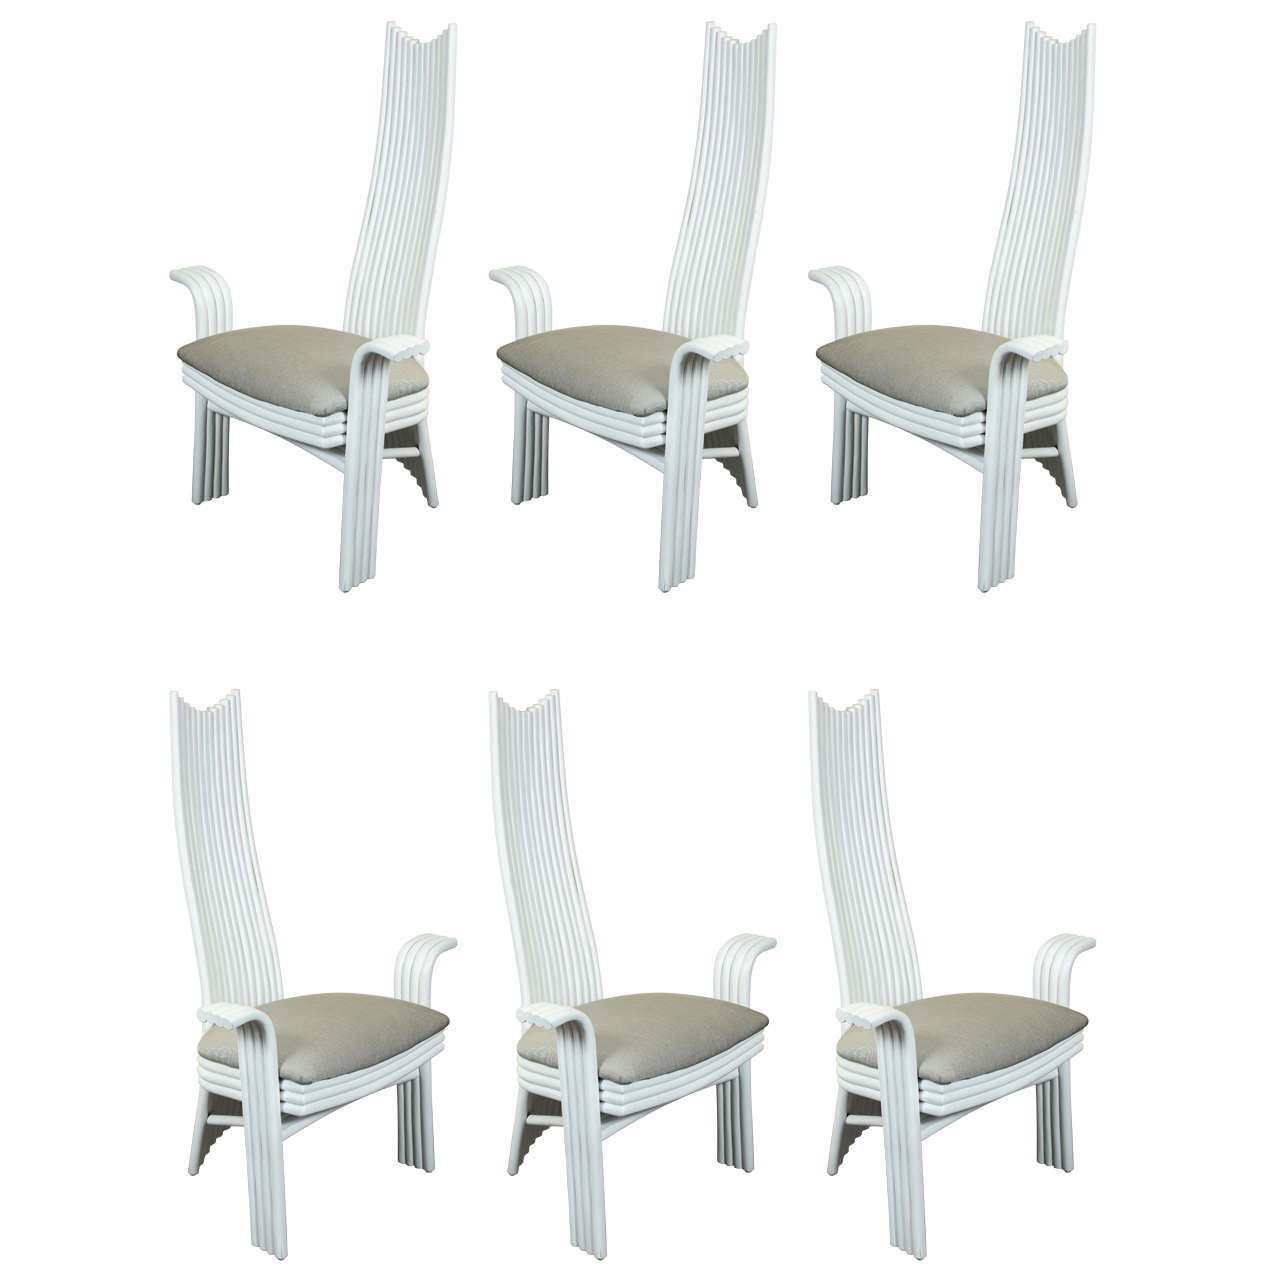 Unusual Dining Chairs: Six Unusual High-Back Dining Chairs At 1stdibs